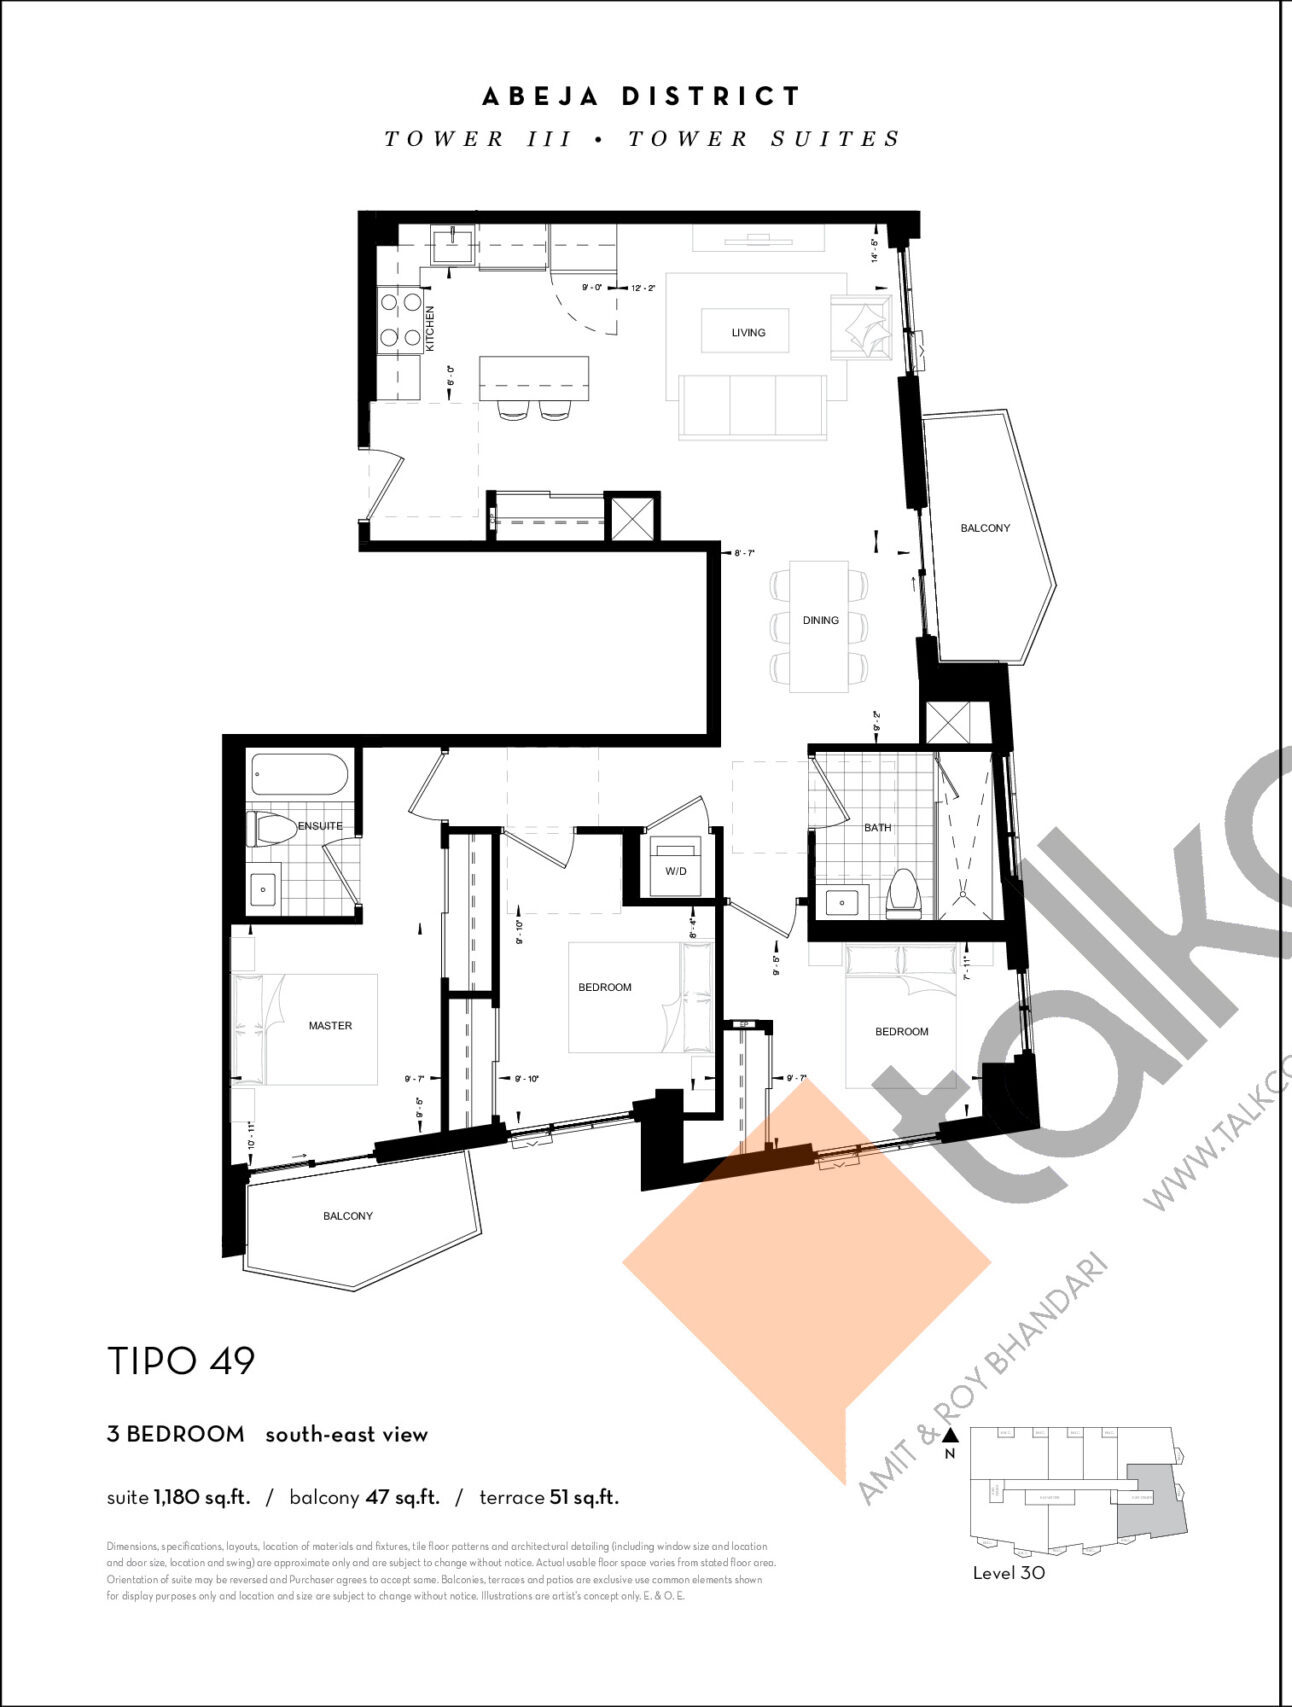 TIPO 49 Floor Plan at Abeja District Condos Tower 3 - 1180 sq.ft